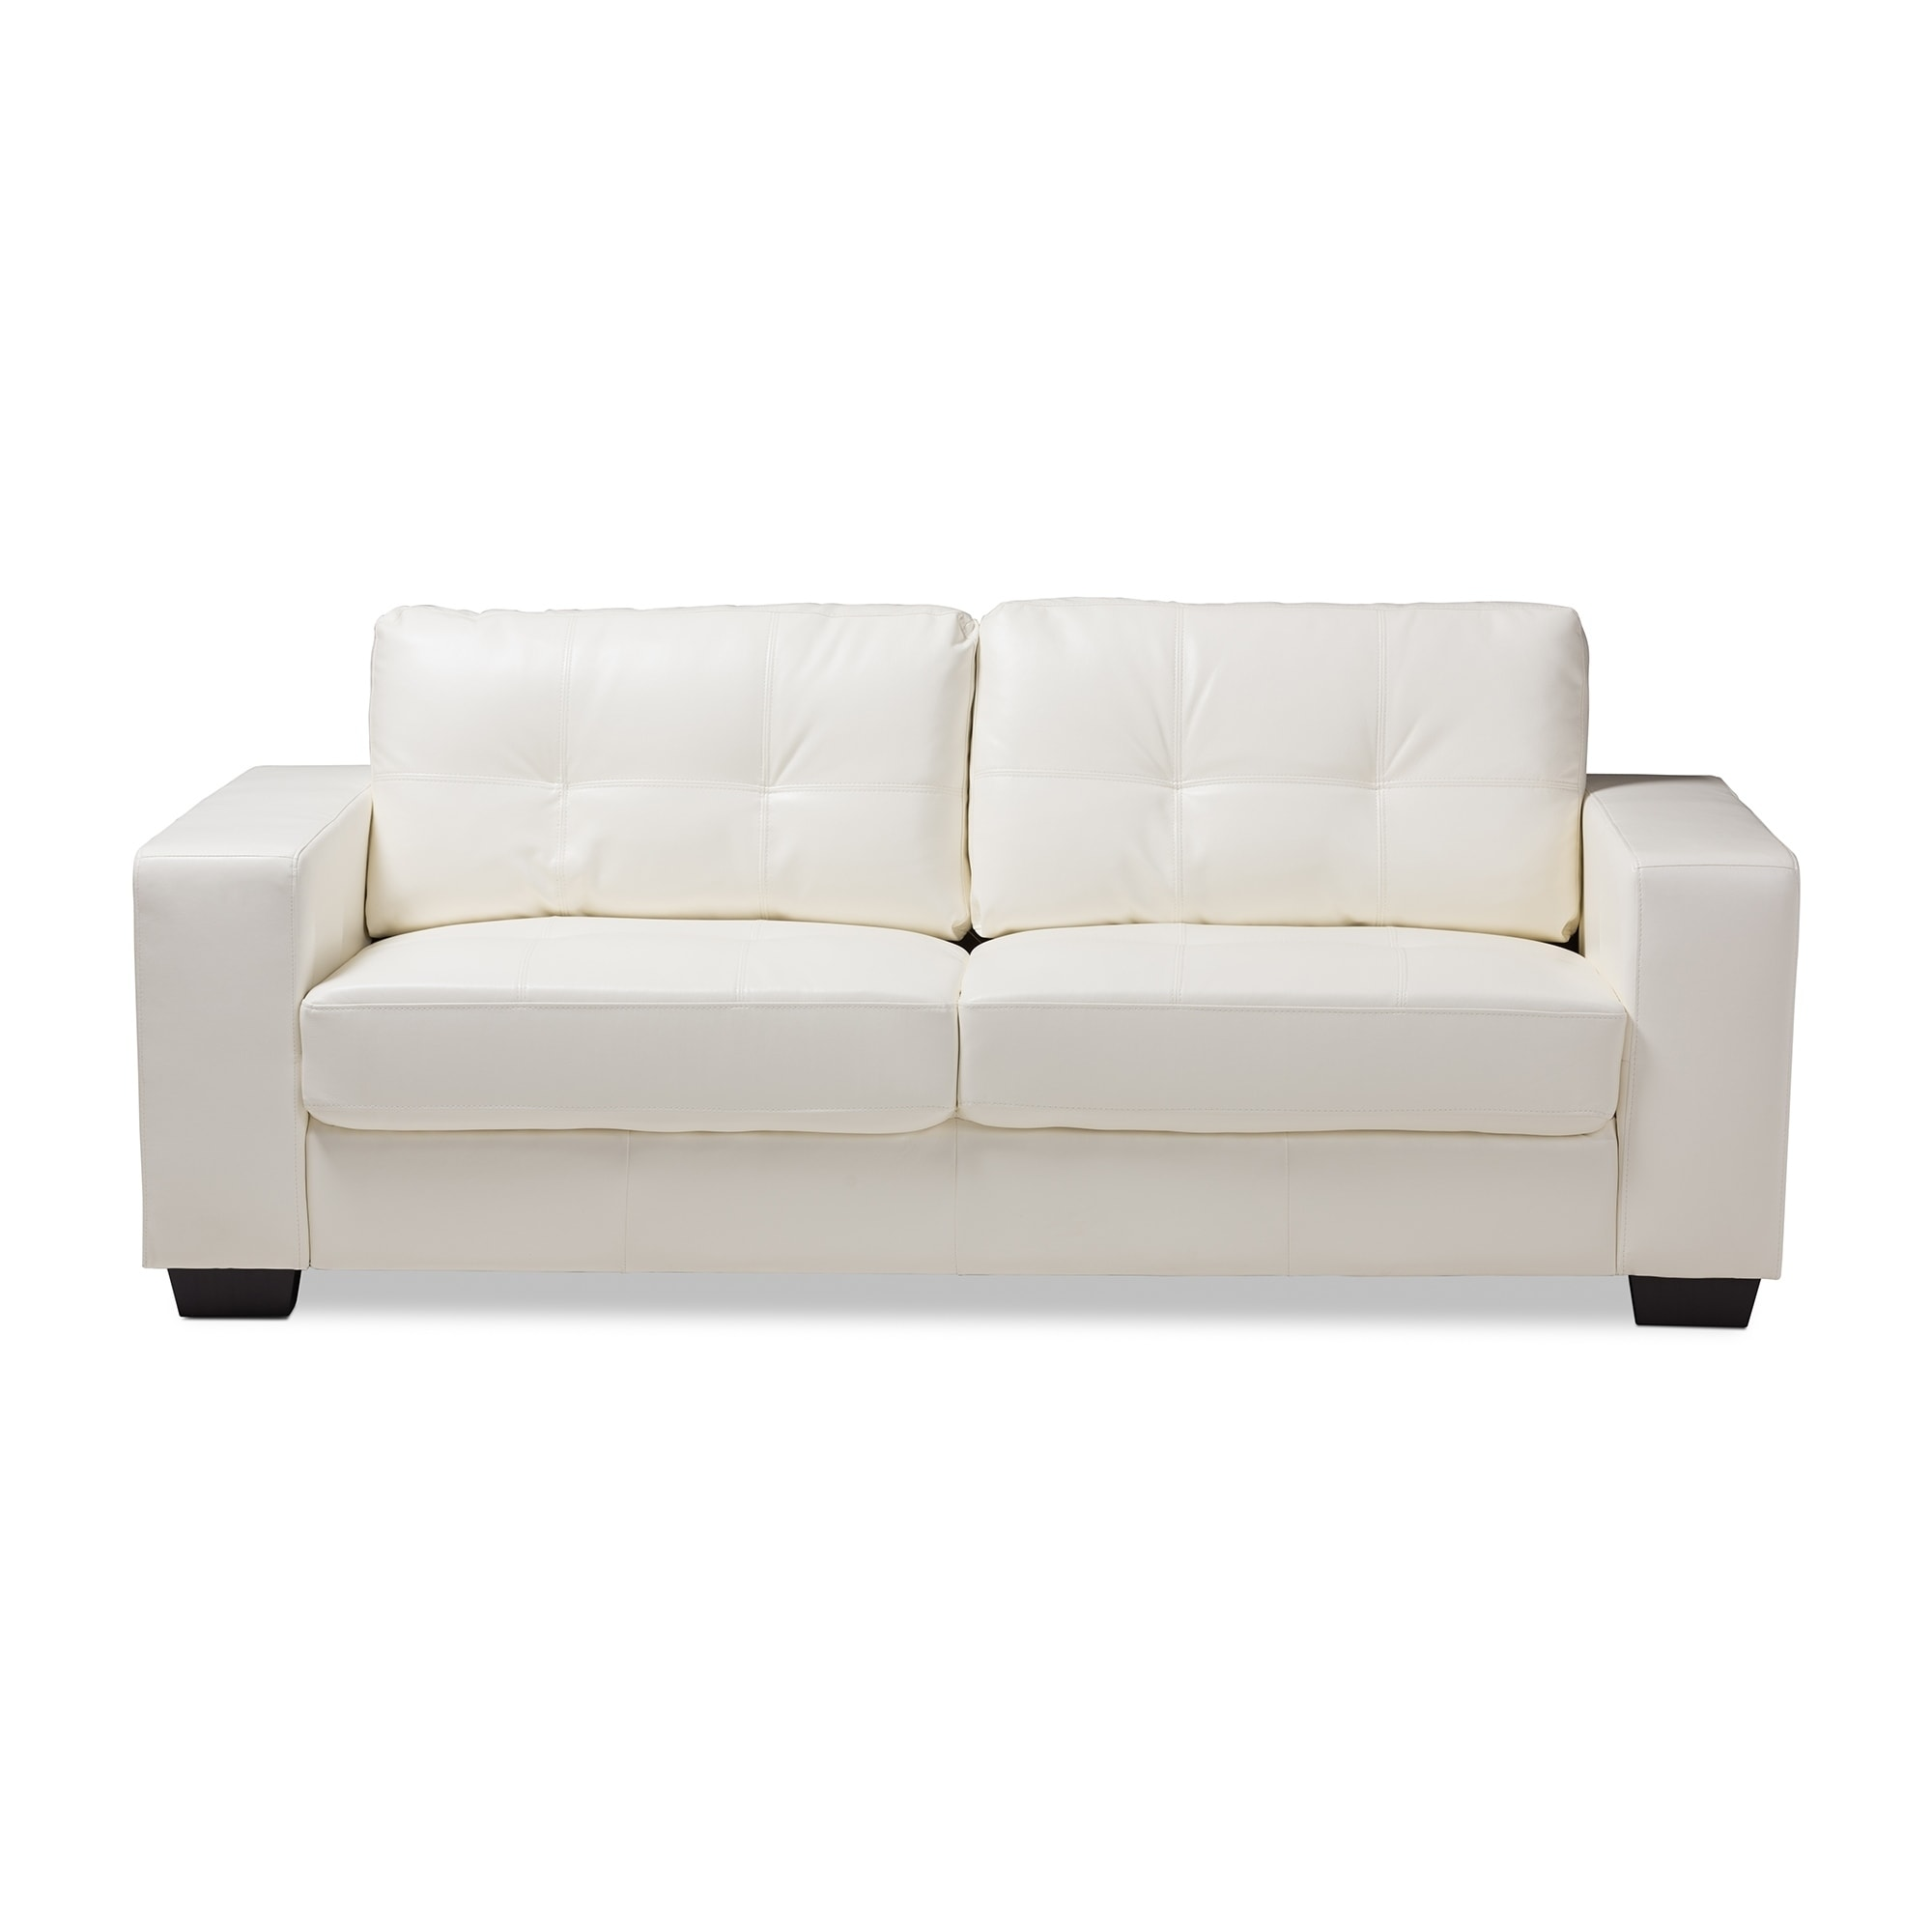 Contemporary White Faux Leather Sofa By Baxton Studio Free Shipping Today 21220825